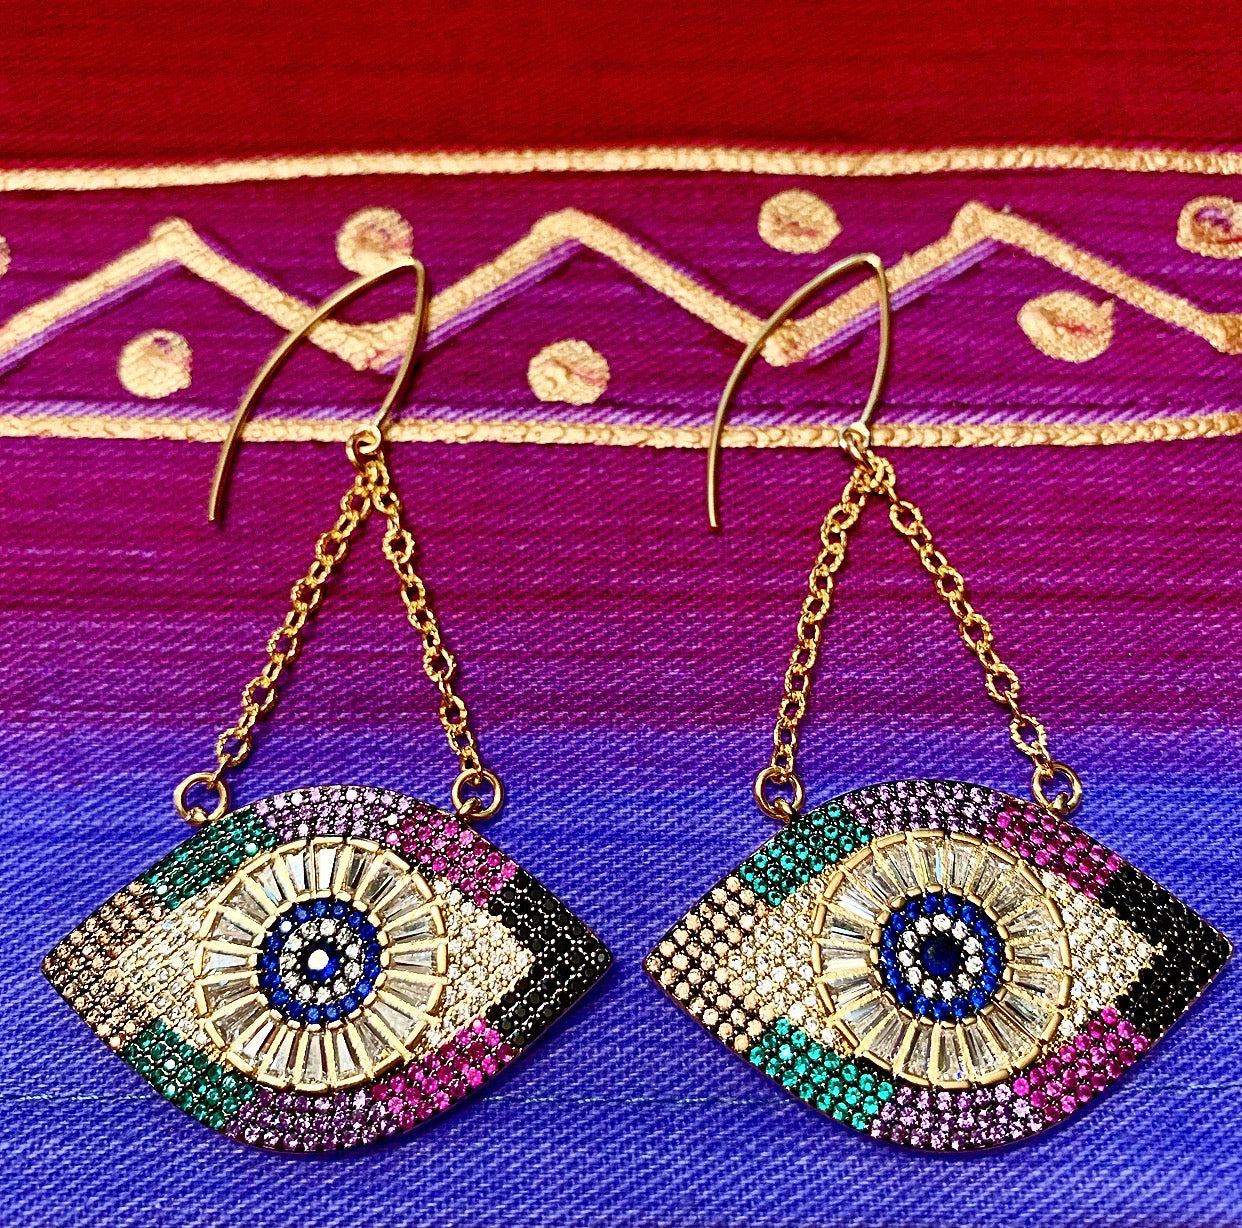 heather matjasic evil eye statement earrings gold ohm jewelry shop naples florida